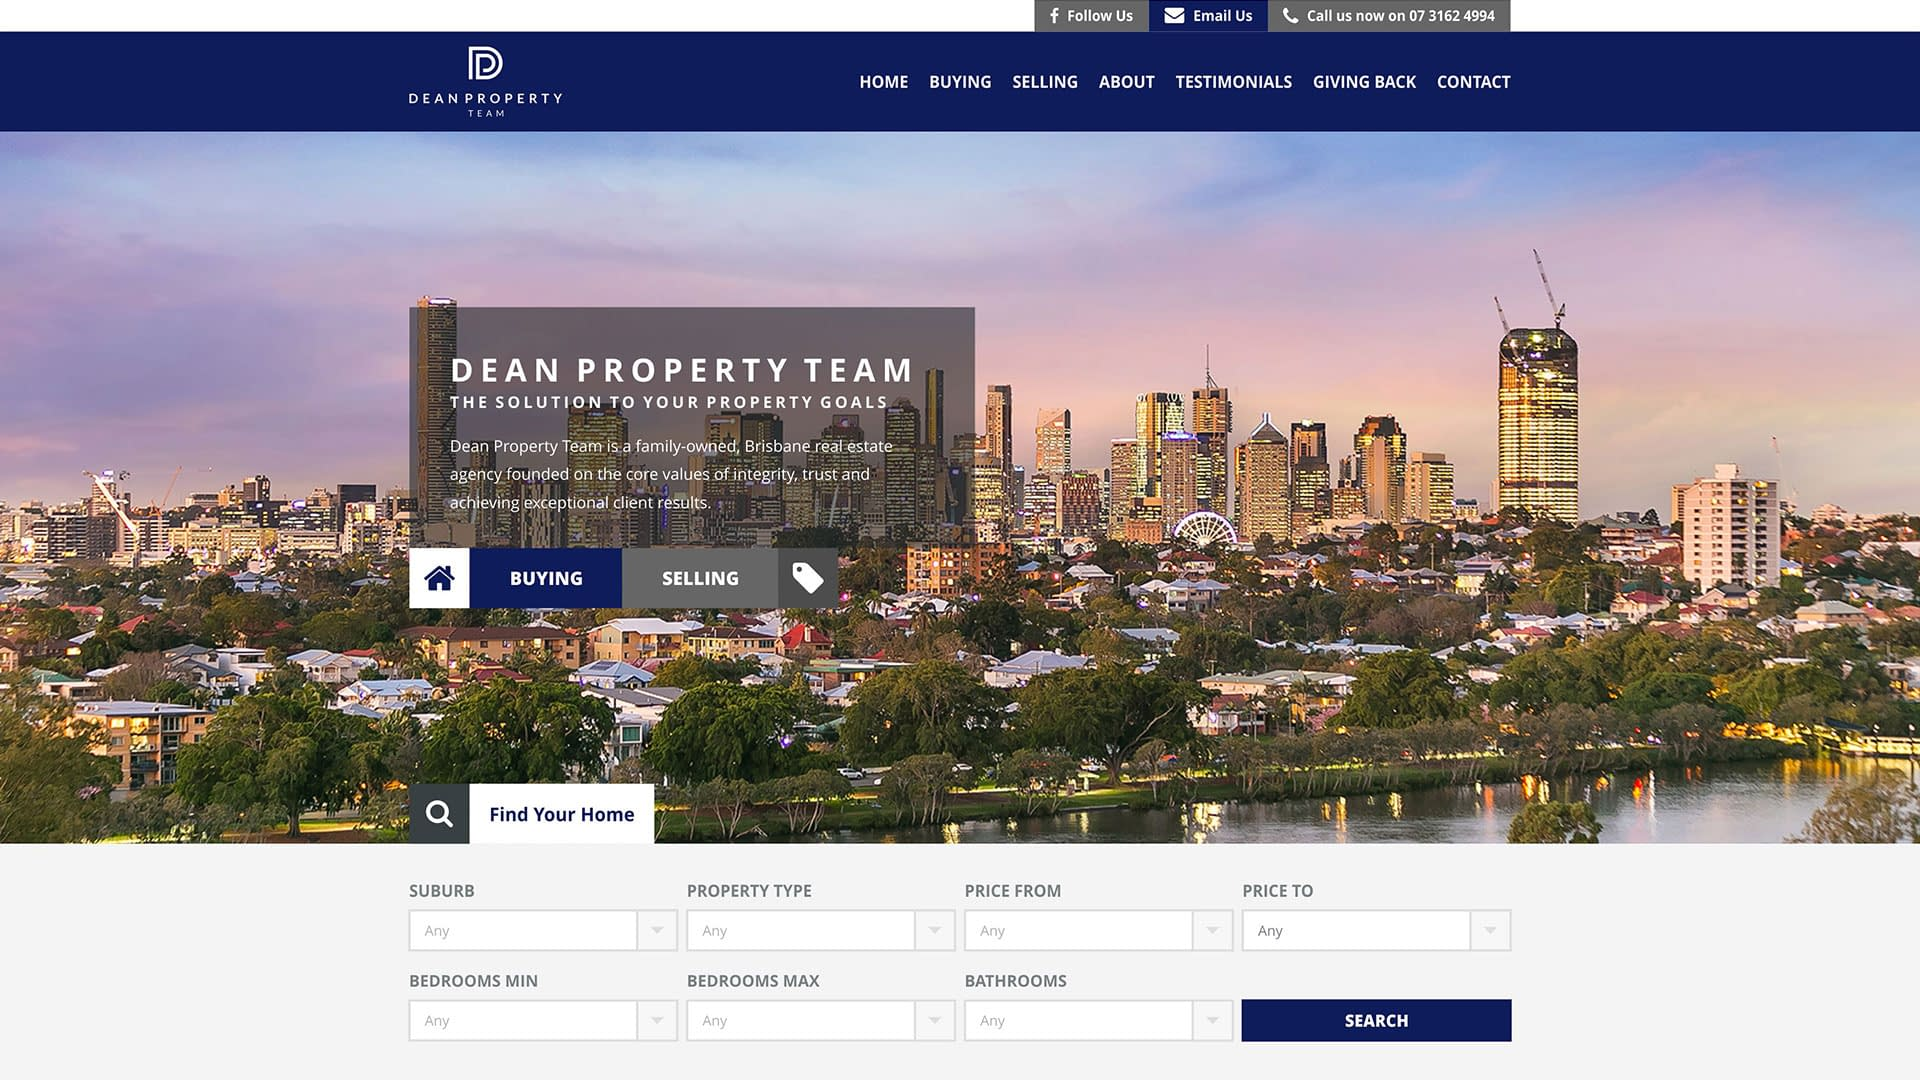 Dean Property Team real estate website